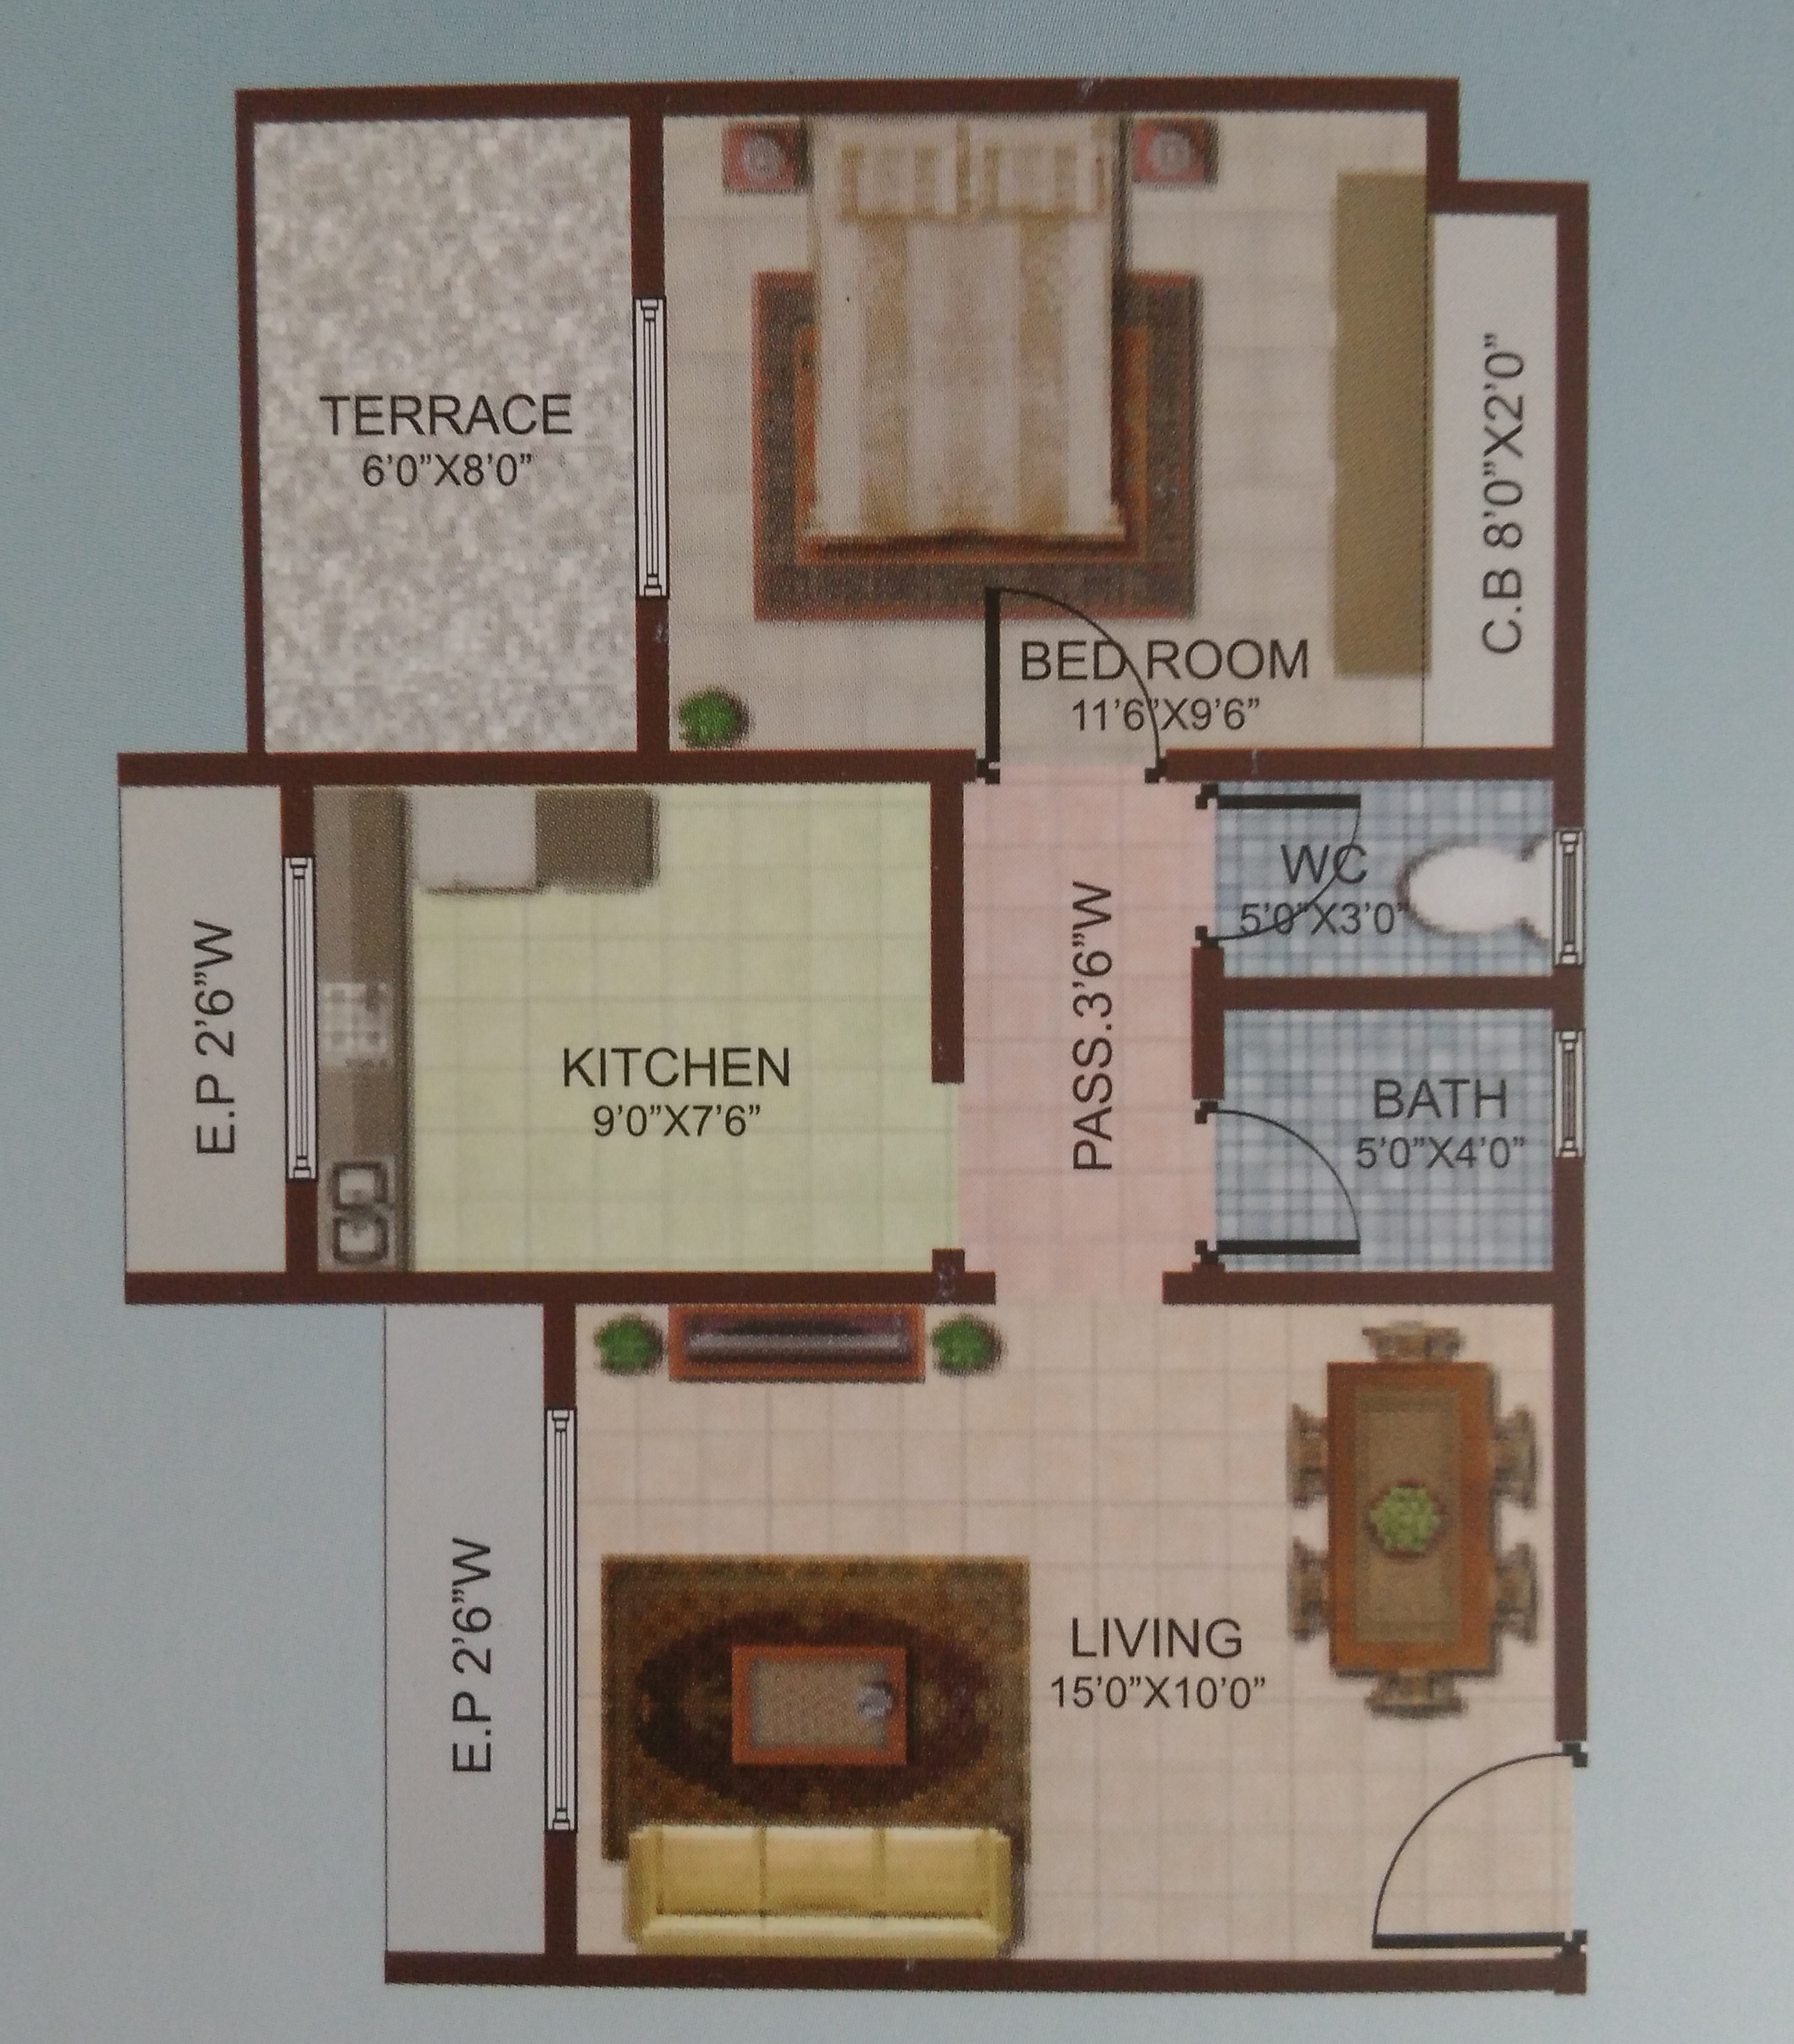 700 Sq Ft 1 bhk 700 sq. ft. apartment for sale in happy home sarvodaya leela